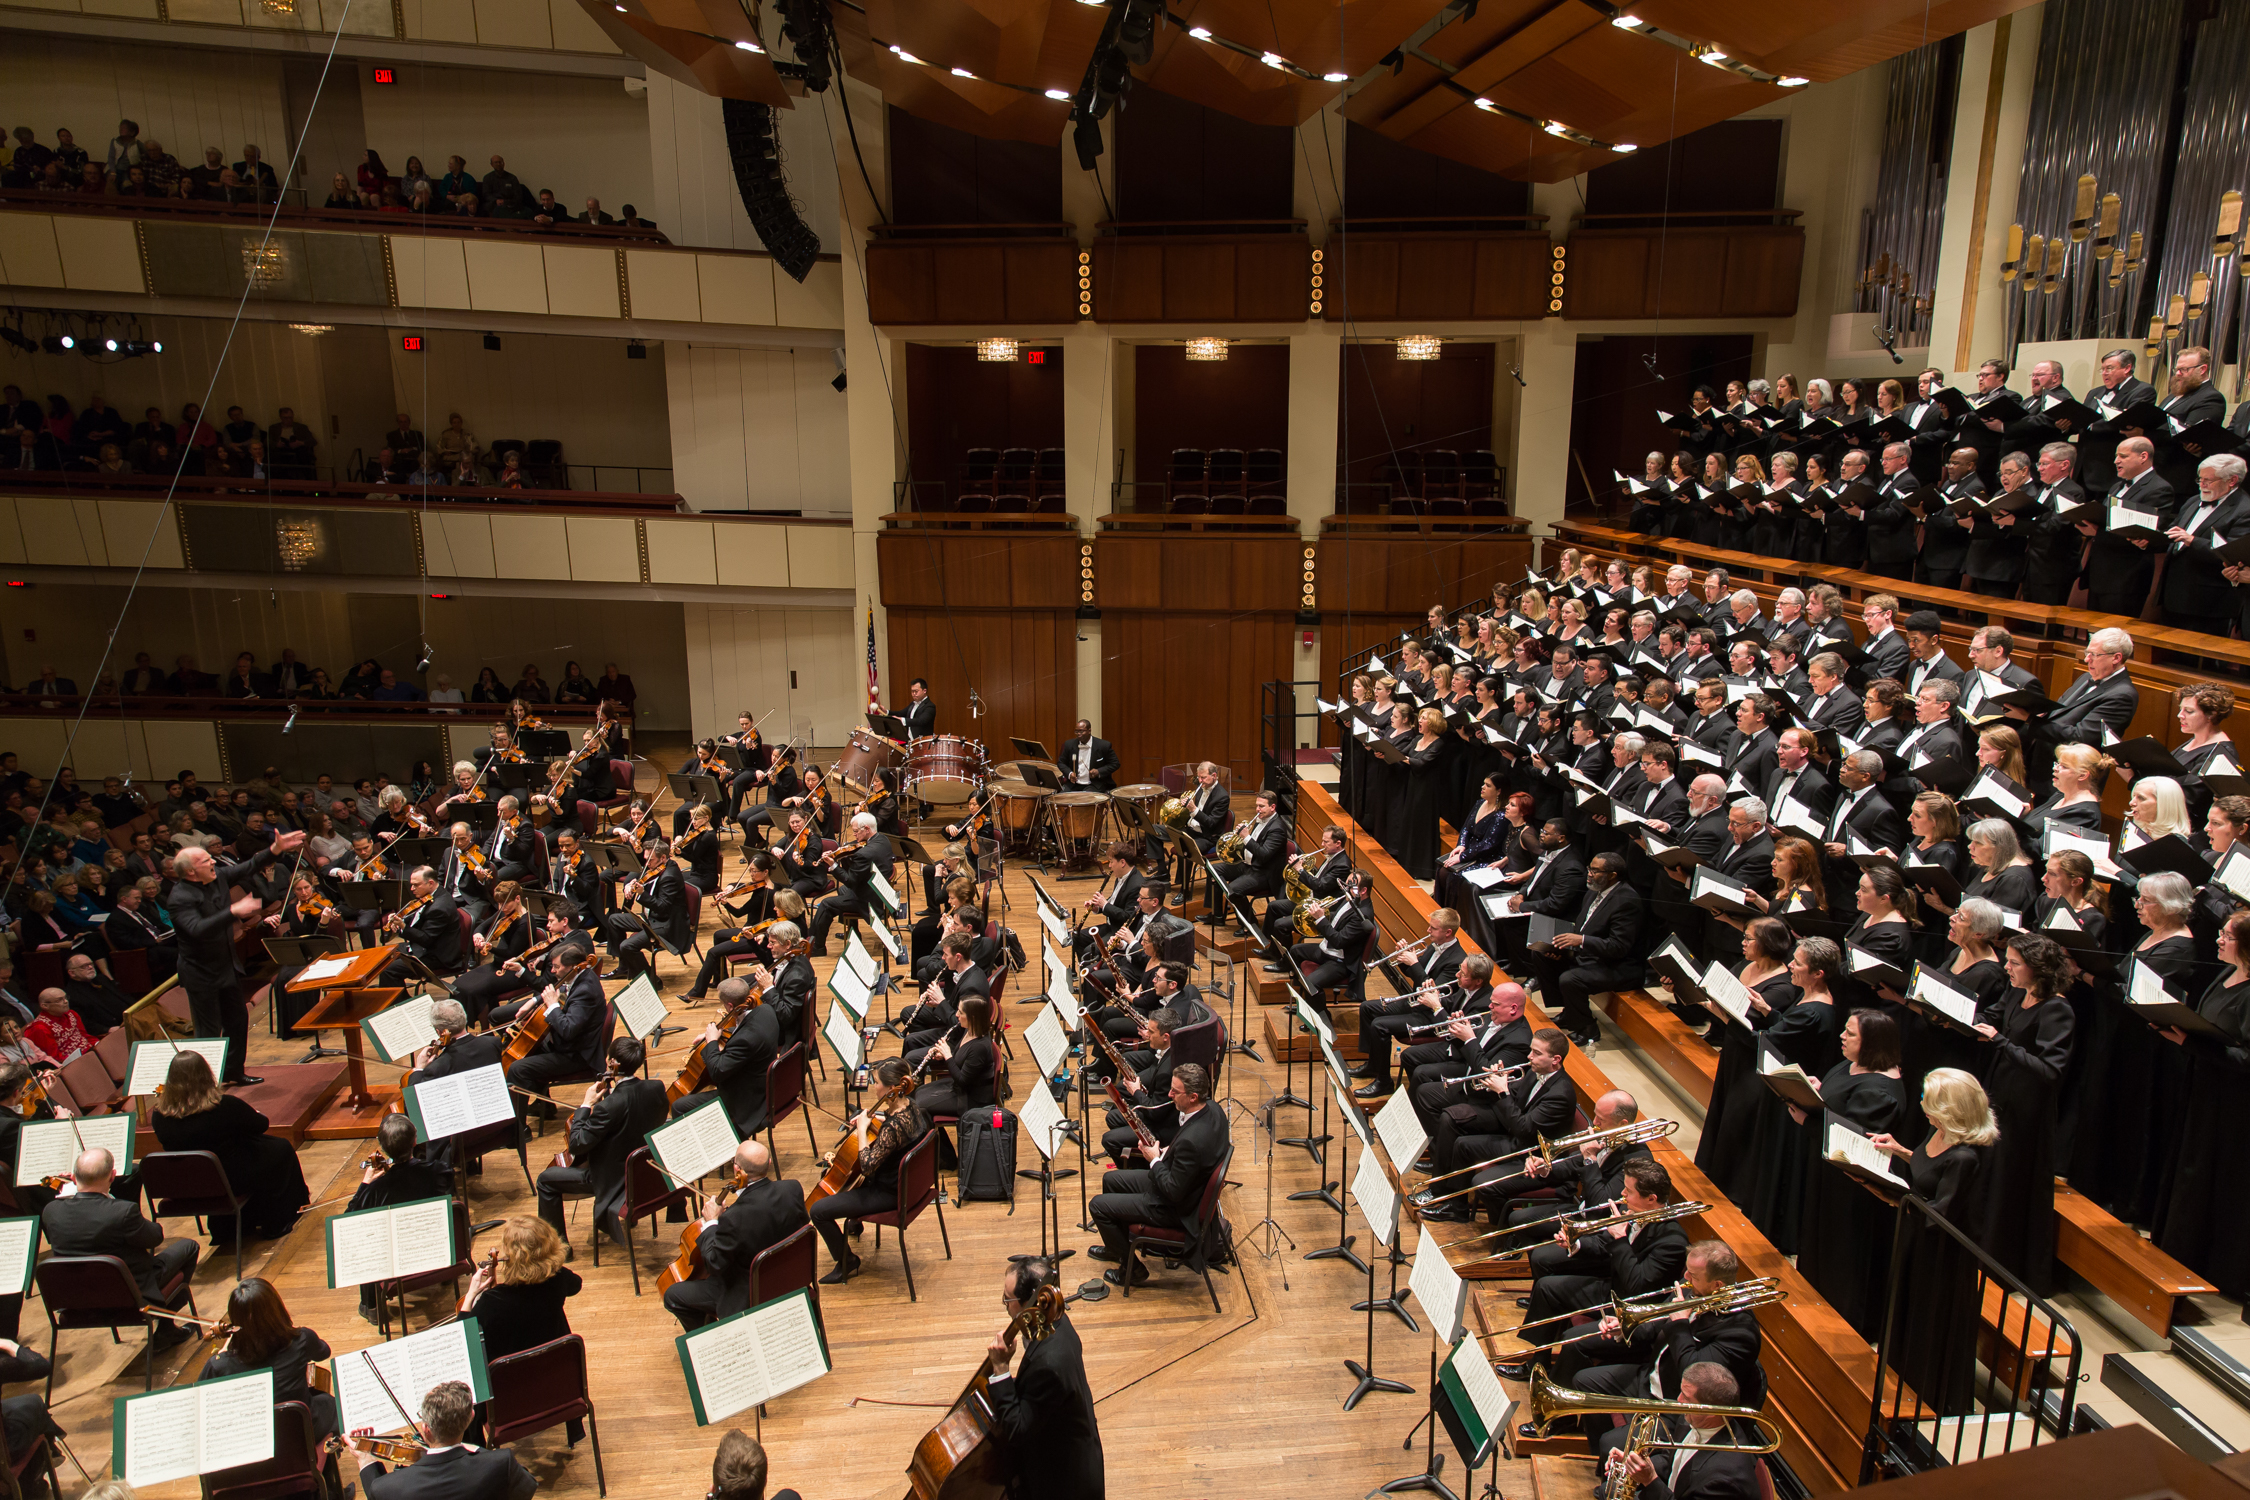 Side view of conductor, orchestra, soloists, and chorus. Photo by Scott Suchman and courtesy of the National Symphony Orchestra.